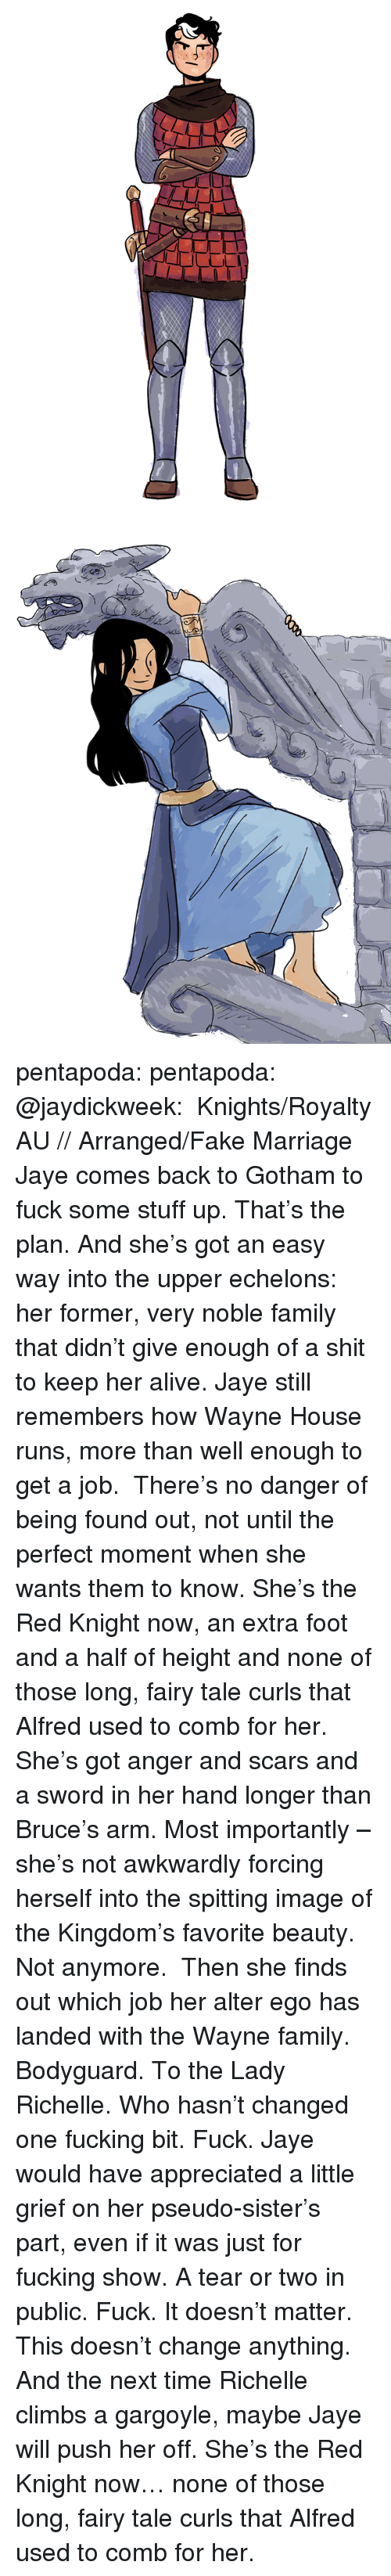 Alive, Fake, and Family: pentapoda:  pentapoda:  @jaydickweek:  Knights/Royalty AU // Arranged/Fake Marriage Jaye comes back to Gotham to fuck some stuff up. That's the plan. And she's got an easy way into the upper echelons: her former, very noble family that didn't give enough of a shit to keep her alive. Jaye still remembers how Wayne House runs, more than well enough to get a job. There's no danger of being found out, not until the perfect moment whenshe wants them to know.She's the Red Knight now, an extra foot and a half of height and none of those long, fairy tale curls that Alfred used to comb for her. She's got anger and scars and a sword in her hand longer than Bruce's arm. Most importantly – she's not awkwardly forcing herself into the spitting image of the Kingdom's favorite beauty. Not anymore. Then she finds outwhich job her alter ego has landed with the Wayne family. Bodyguard. To the Lady Richelle. Who hasn't changed one fucking bit. Fuck. Jaye would have appreciated a little grief on her pseudo-sister's part, even if it was just for fucking show. A tear or two in public.Fuck. It doesn't matter. This doesn't change anything. And the next time Richelle climbs a gargoyle, maybe Jaye will push her off.     She's the Red Knight now… none of those long, fairy tale curls that Alfred used to comb for her.